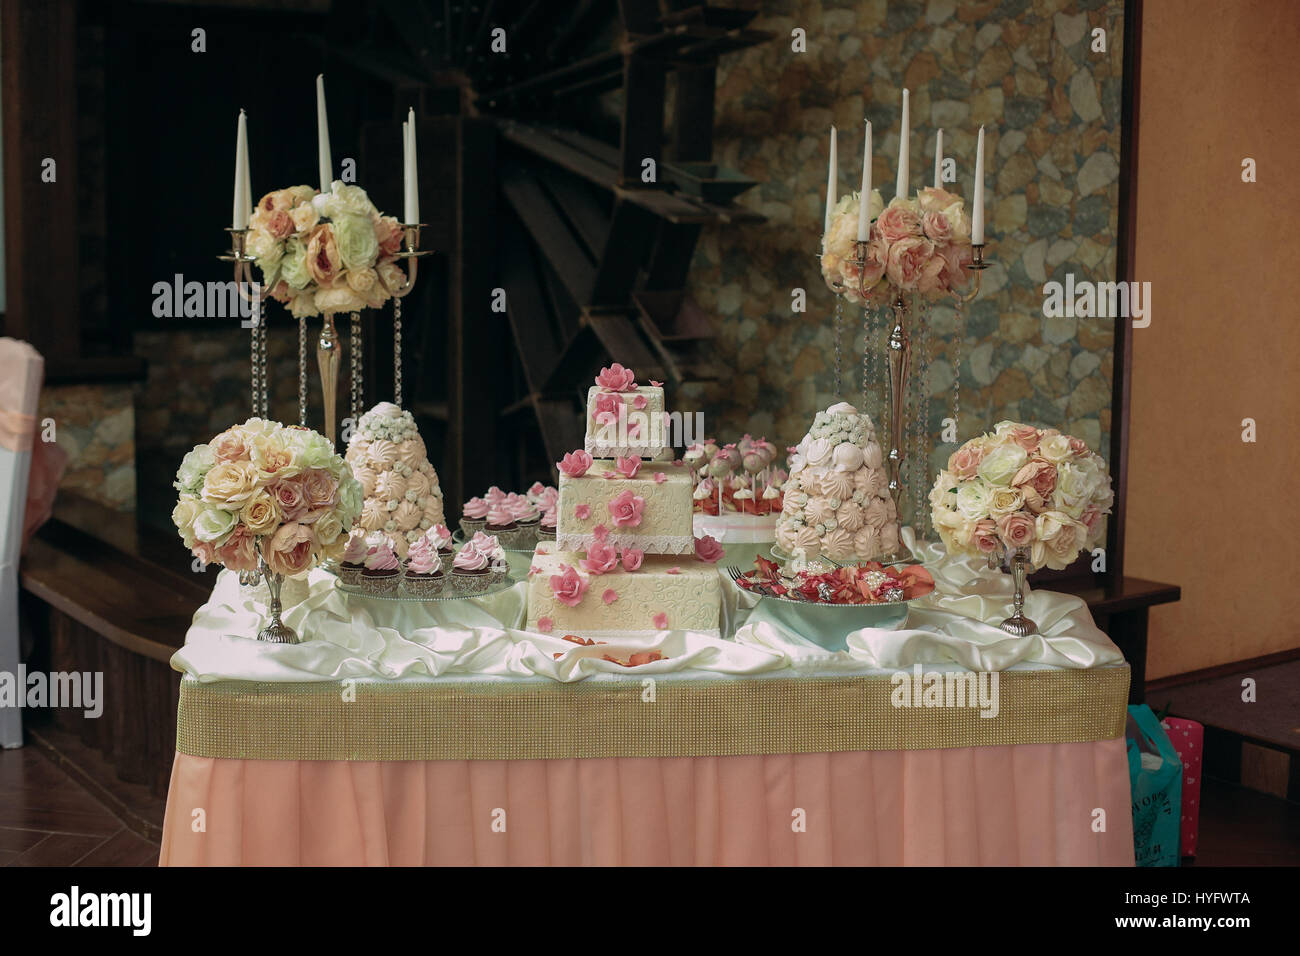 wedding cake in the banquet hall - Stock Image